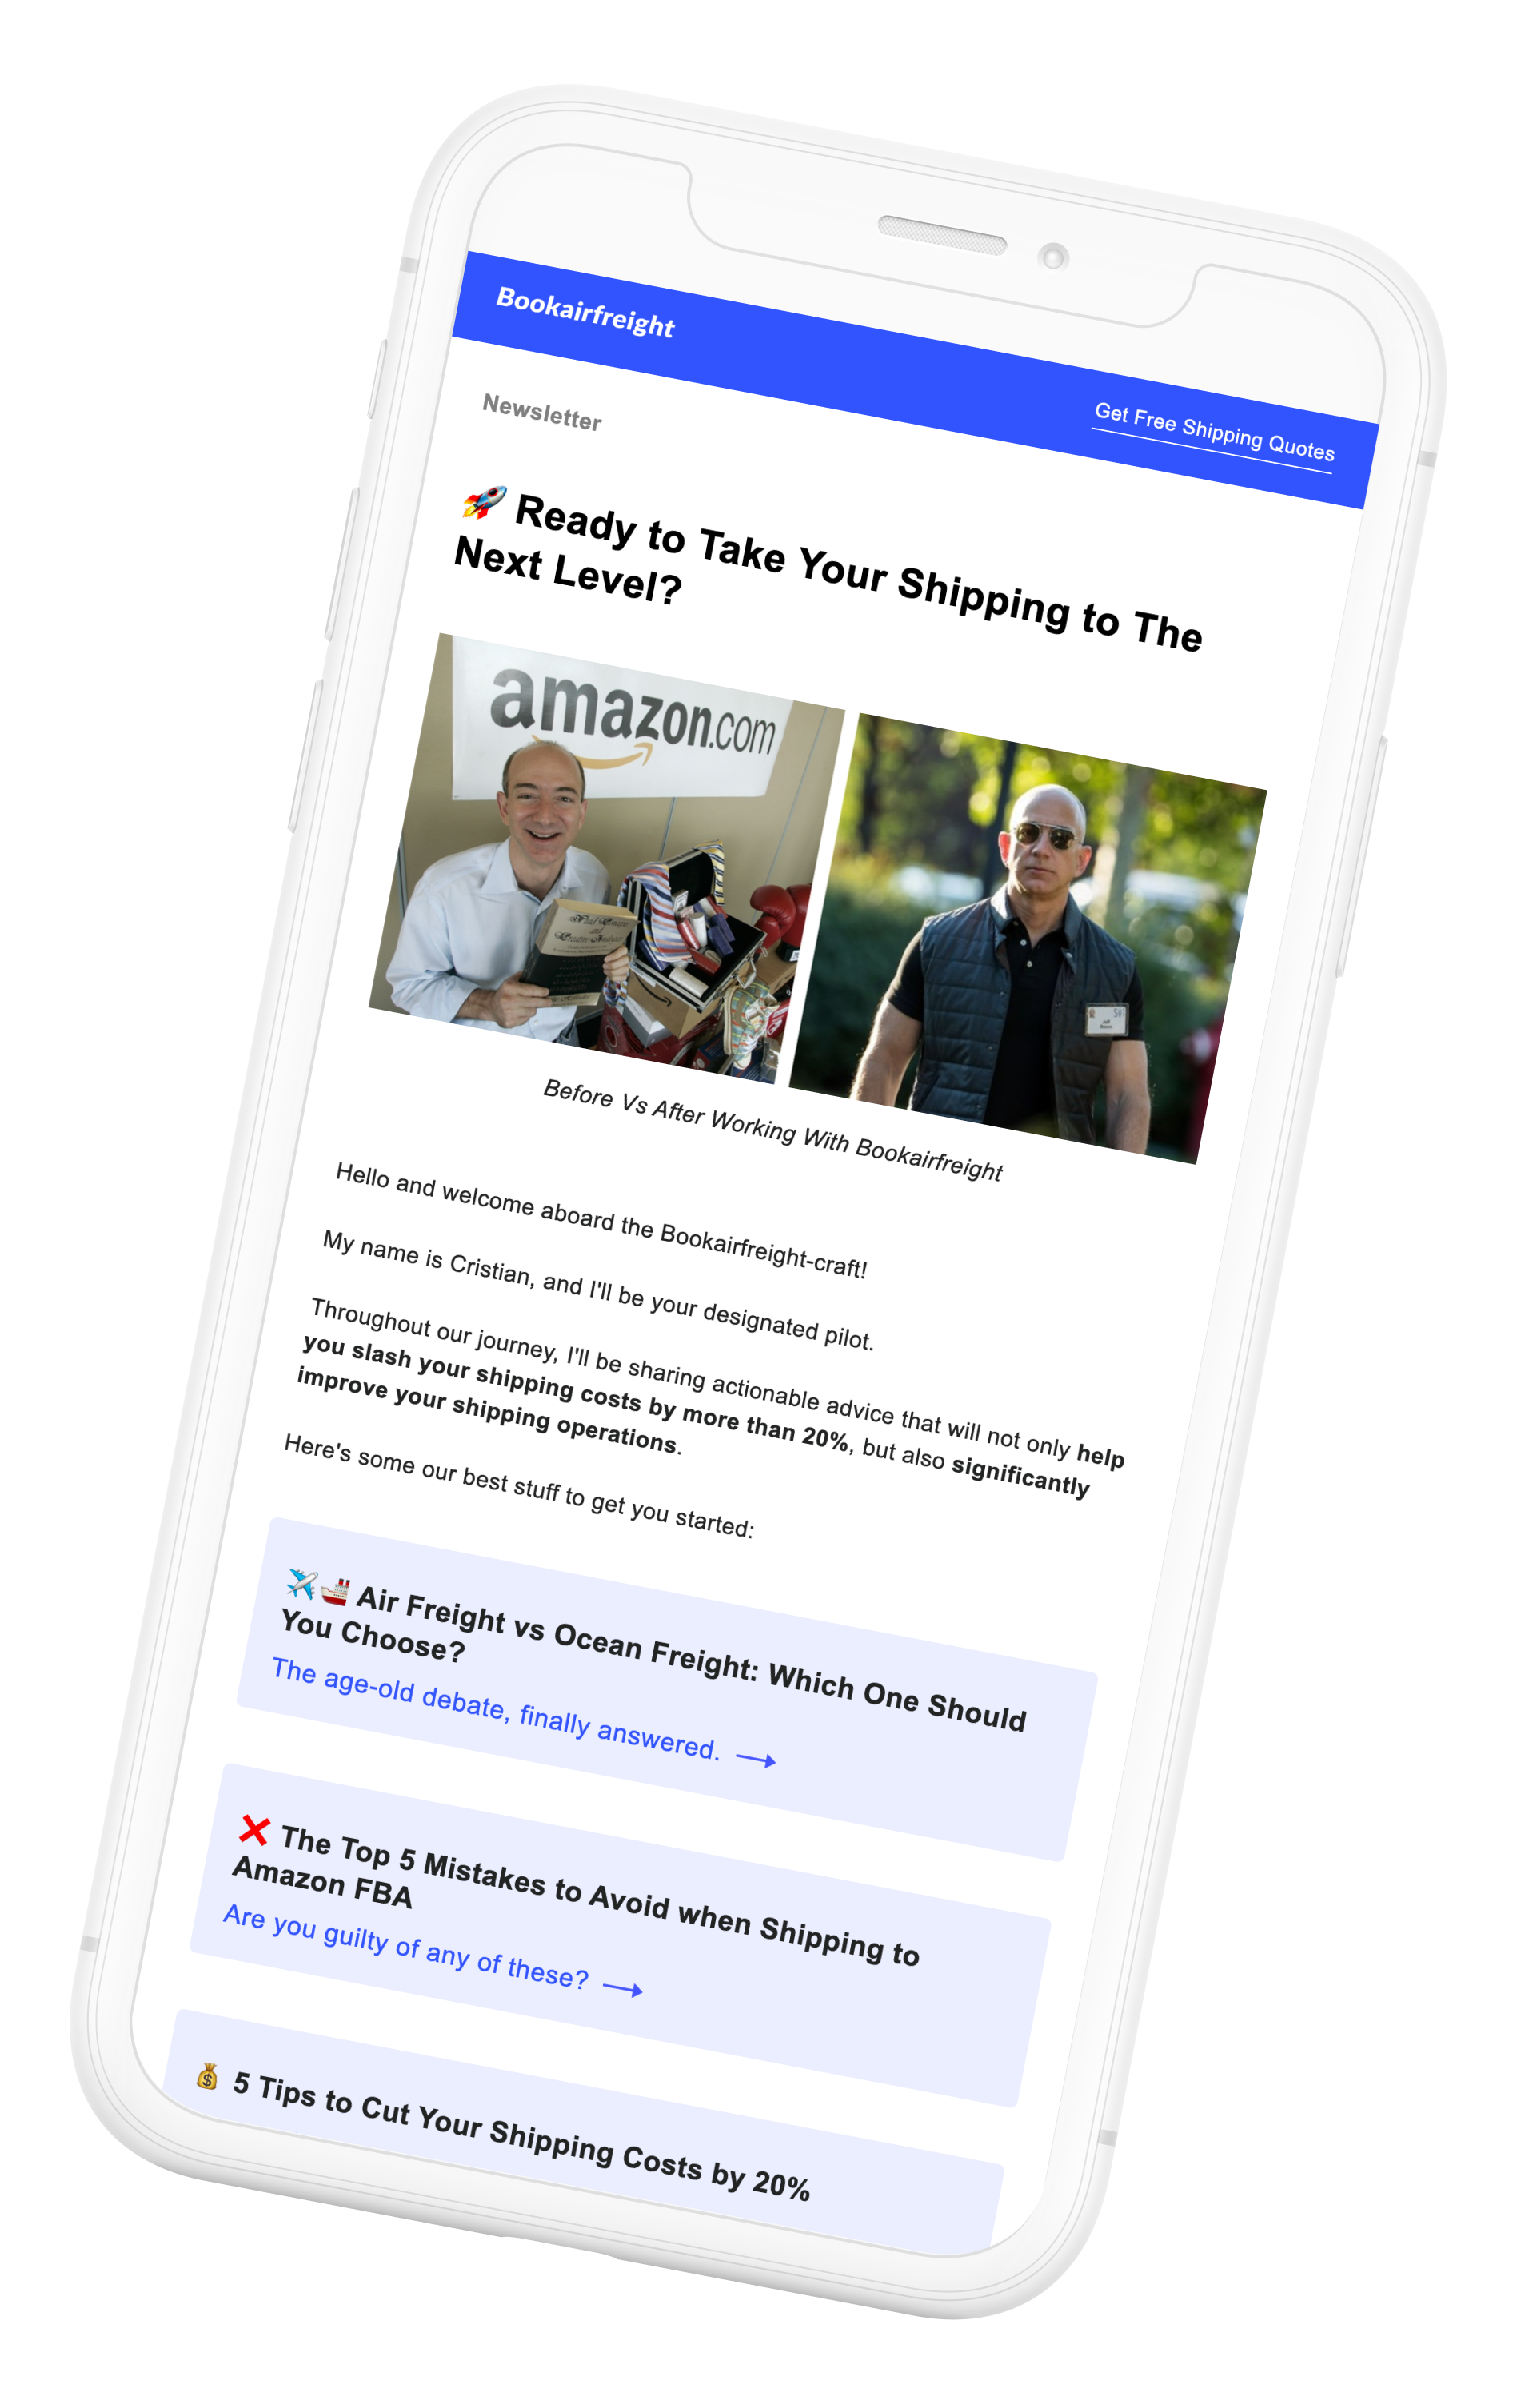 Logistics blog for SMEs and Amazon sellers